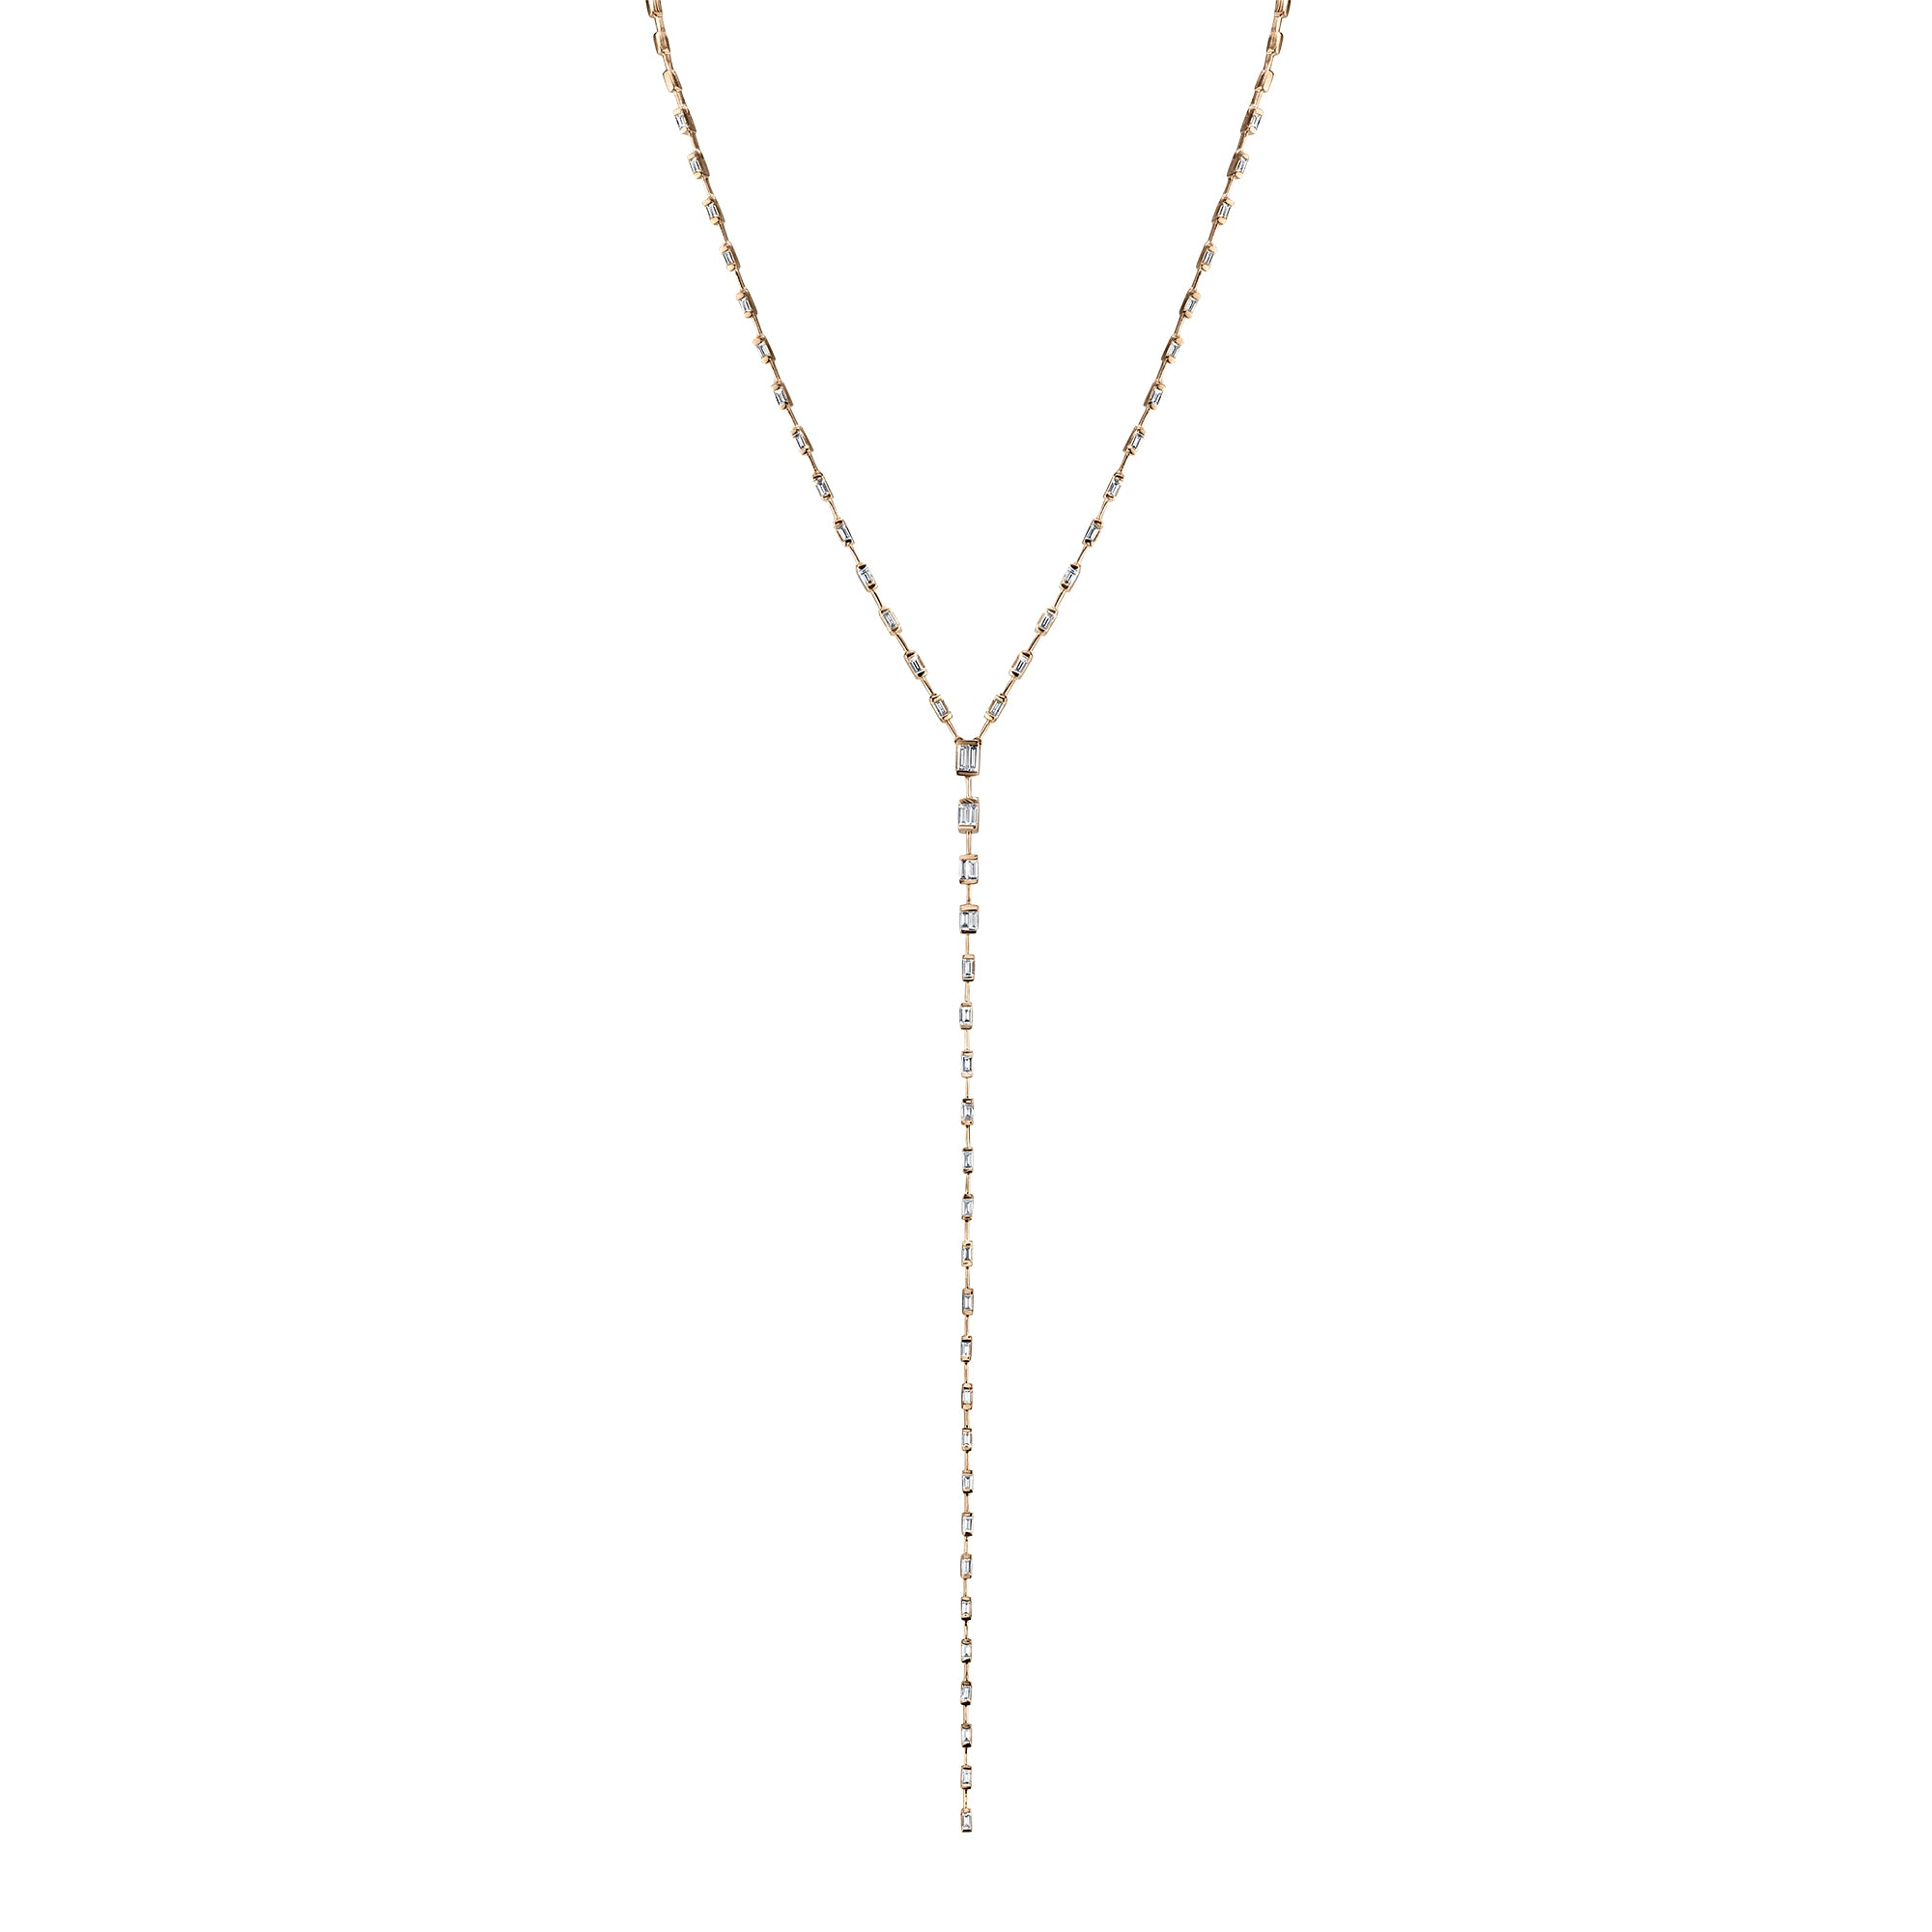 Gold White Diamond Infinity Baguette Y Drop Necklace by Shay for Broken English Jewlery